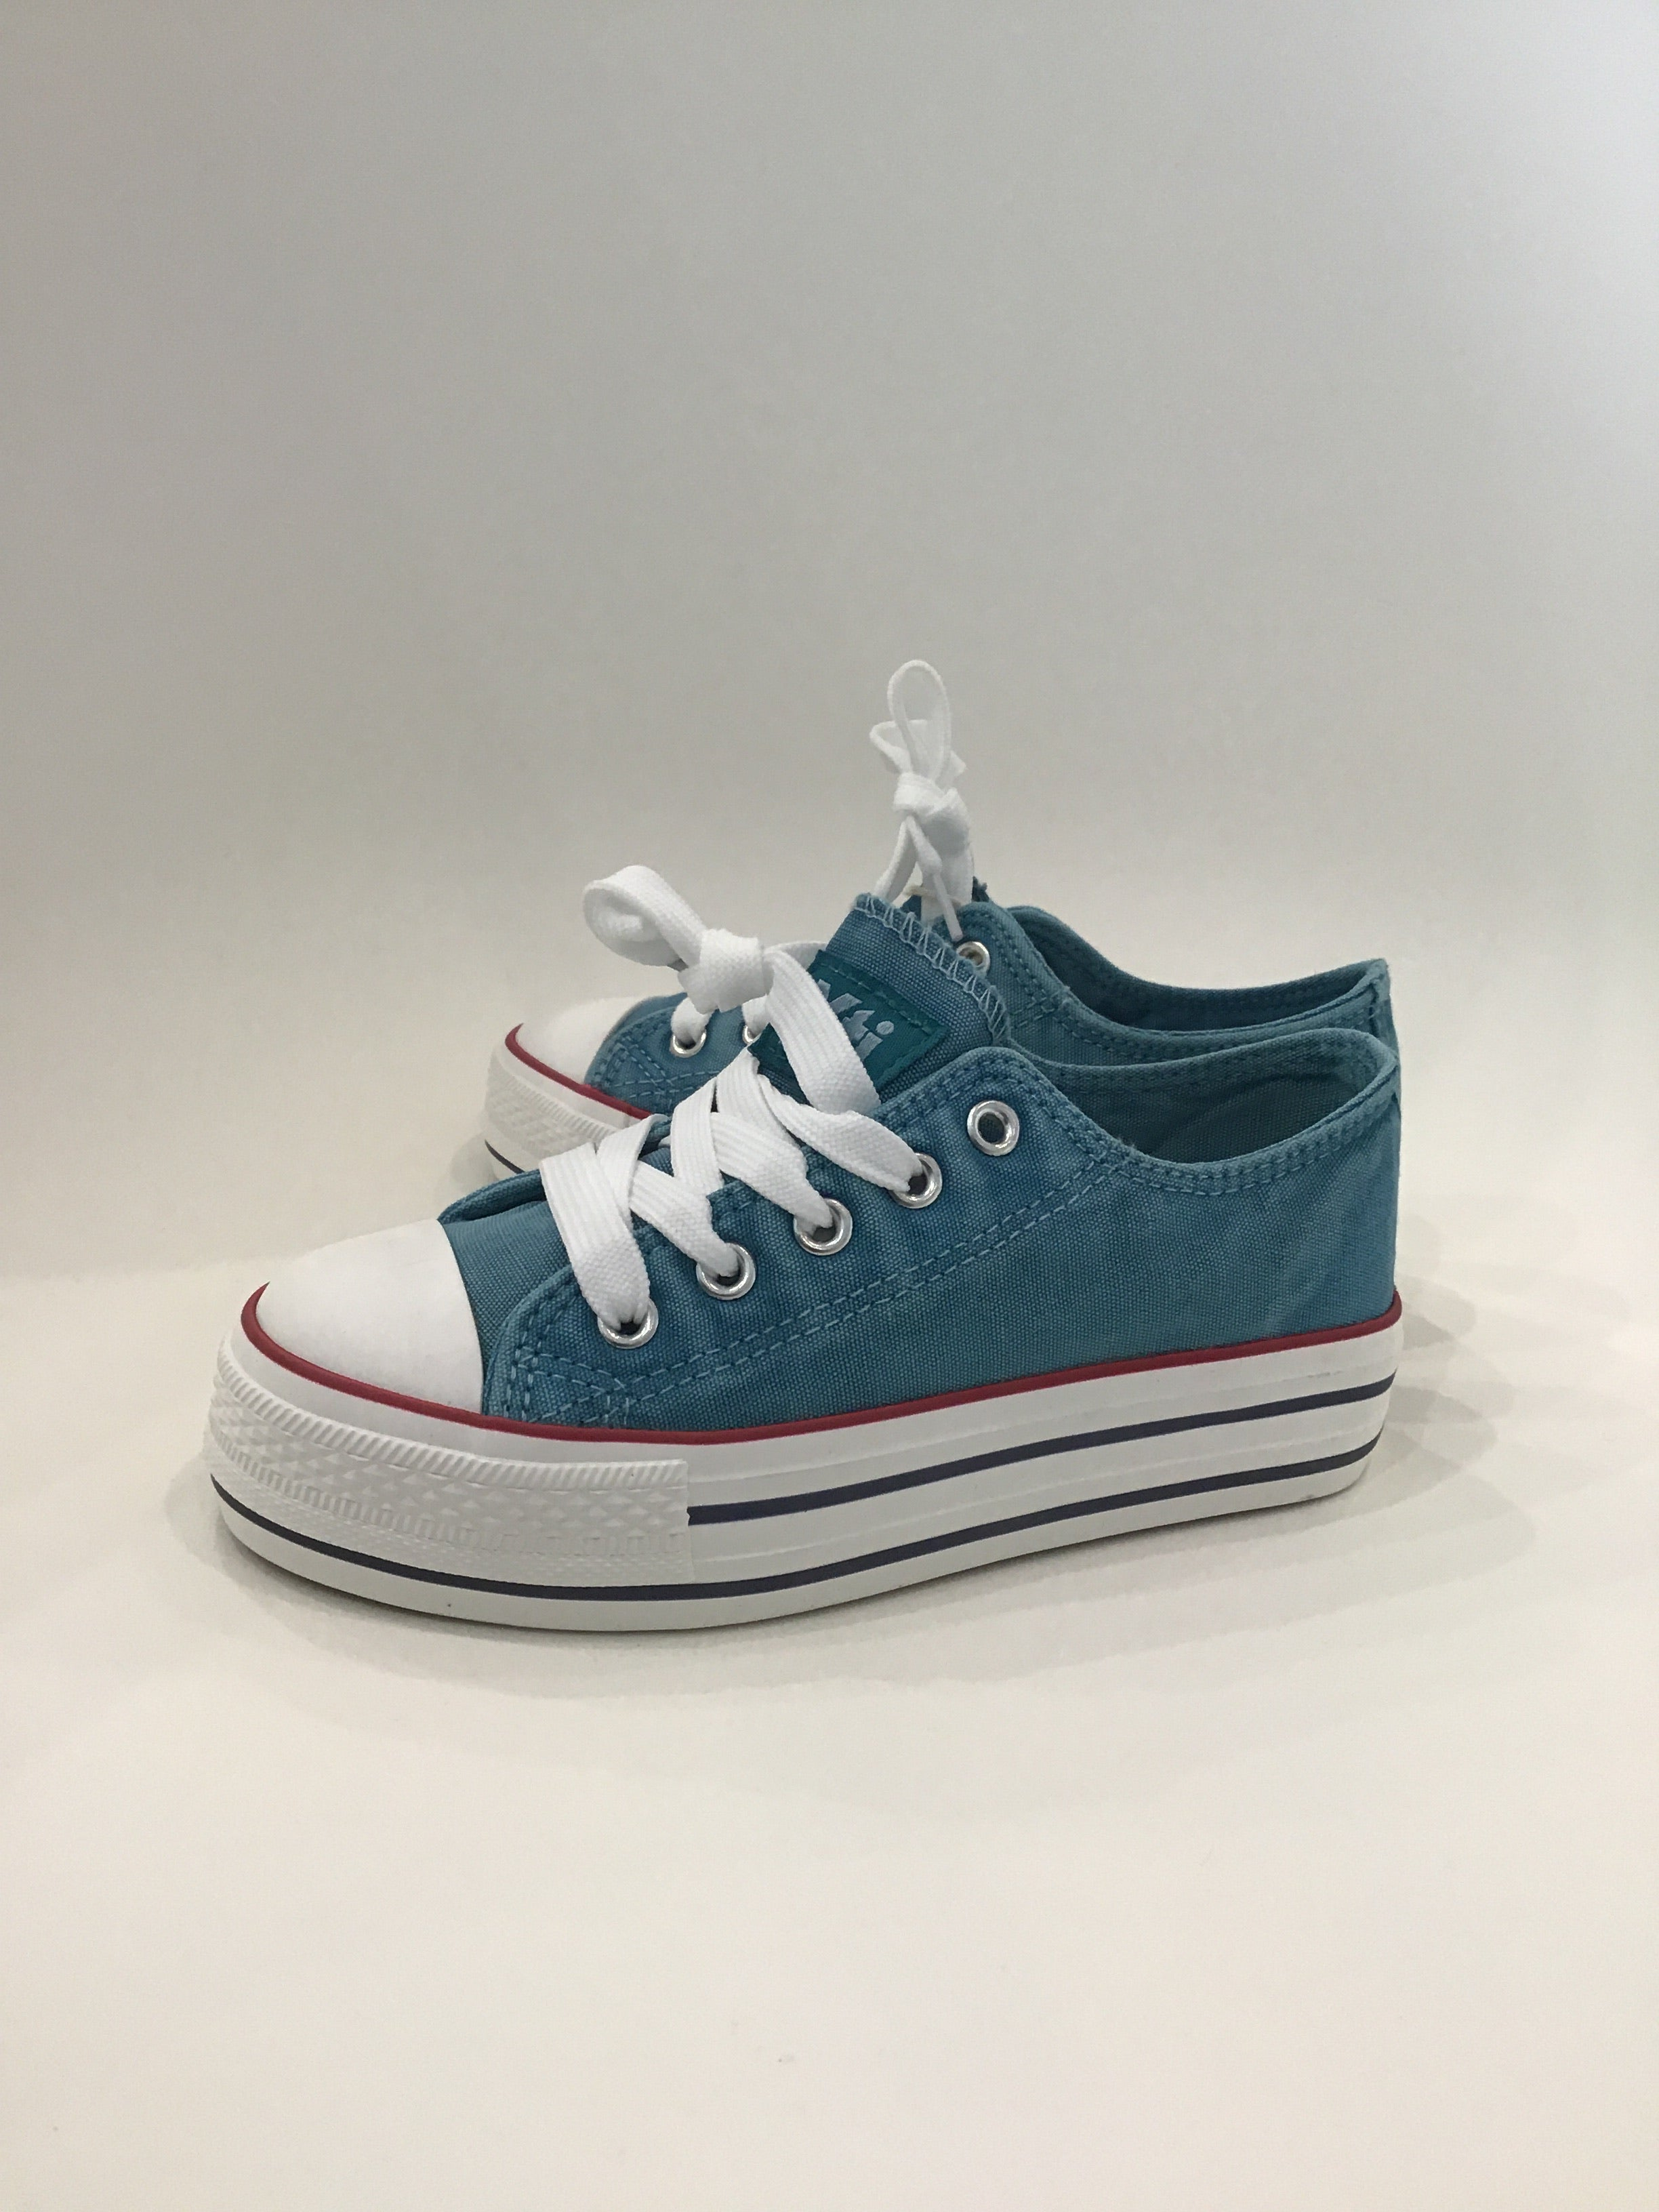 Jenna lace up Kids shoe